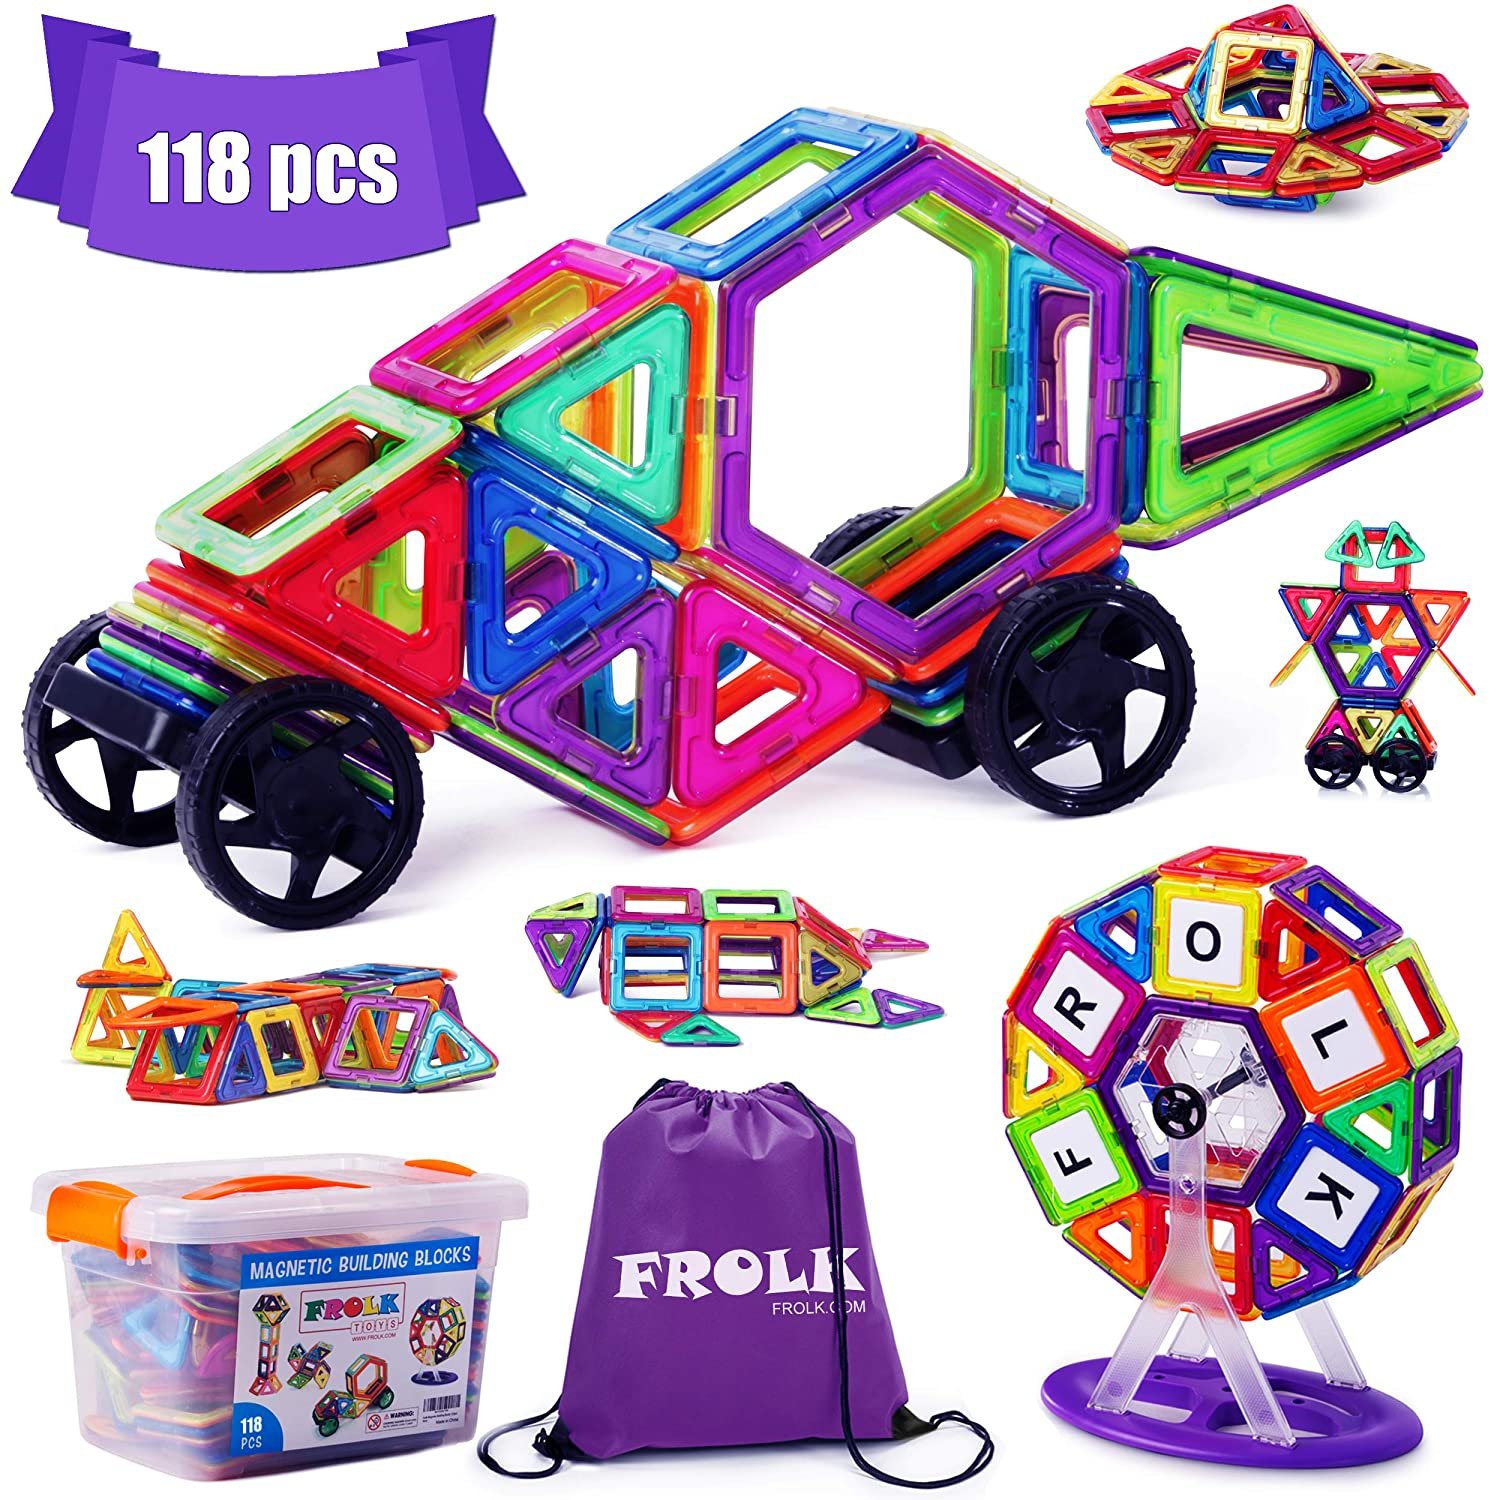 Frolk Magnetic Building Blocks Set 118 Pieces - Tiles Set for 3D Construction for Kids Age 3+. Educational Toy for Girls and Boys. Hours of Fun! Comes with Plastic Storage Box and Premium Backpack.